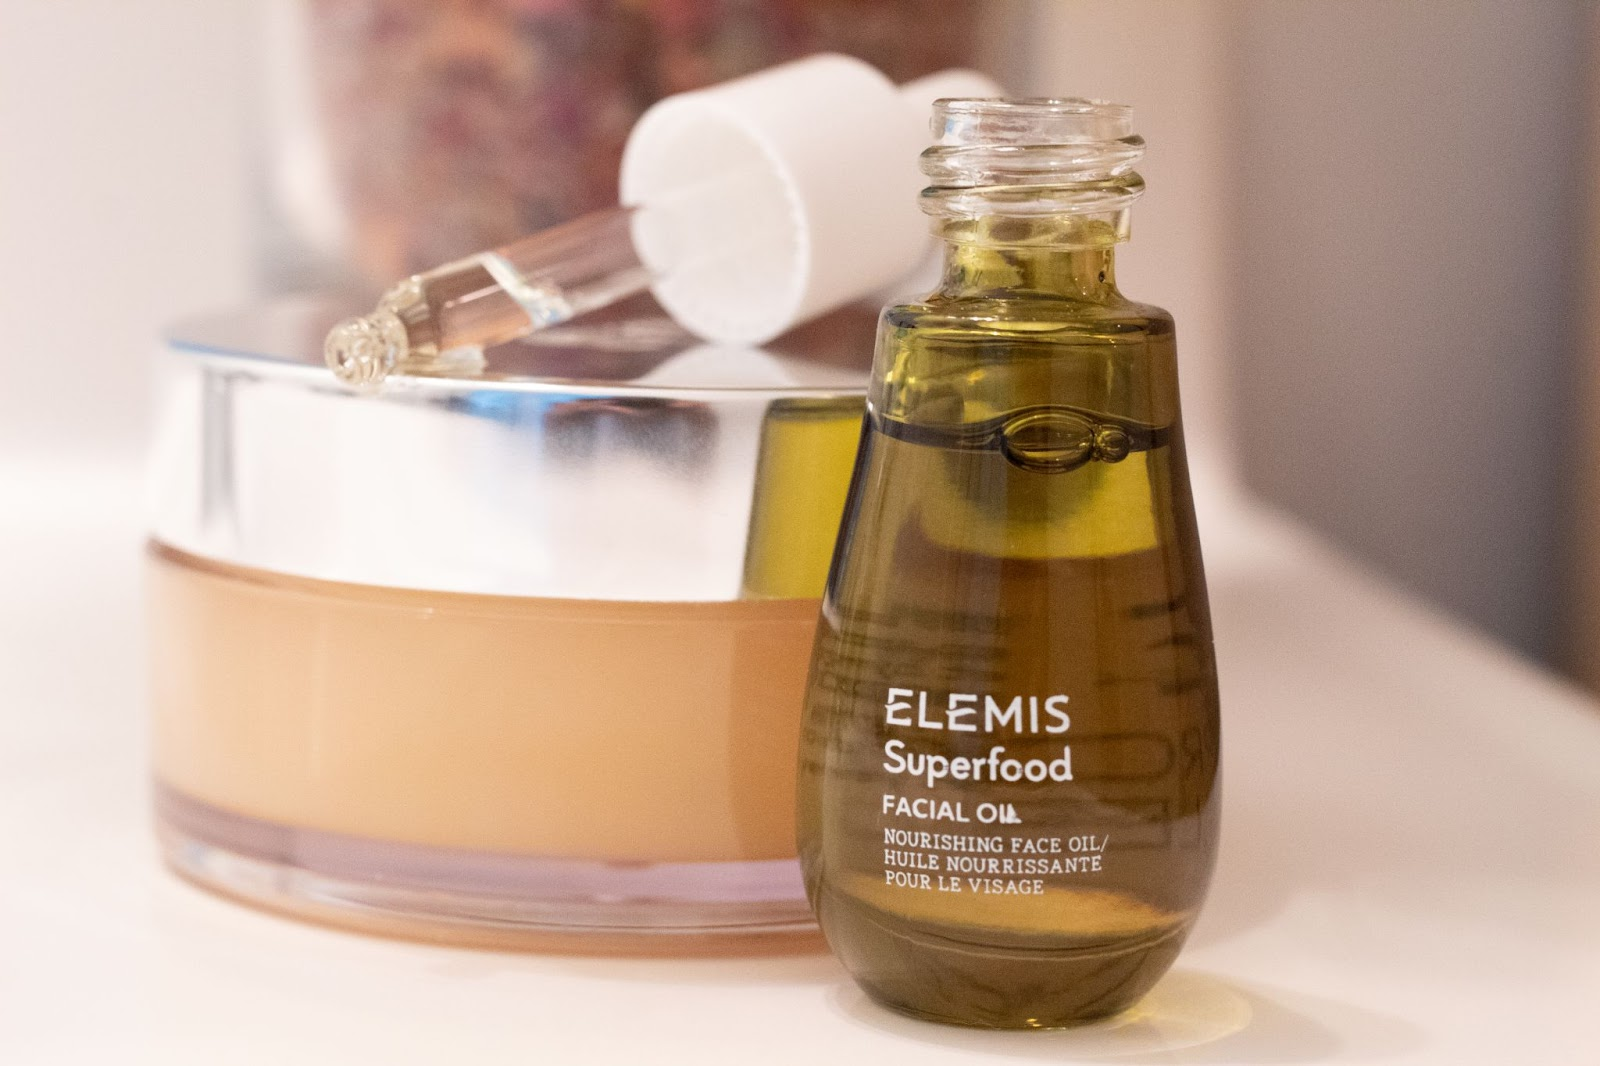 ELEMIS Skin Care Product Review - Superfood Facial Oil - Patience & Pearls